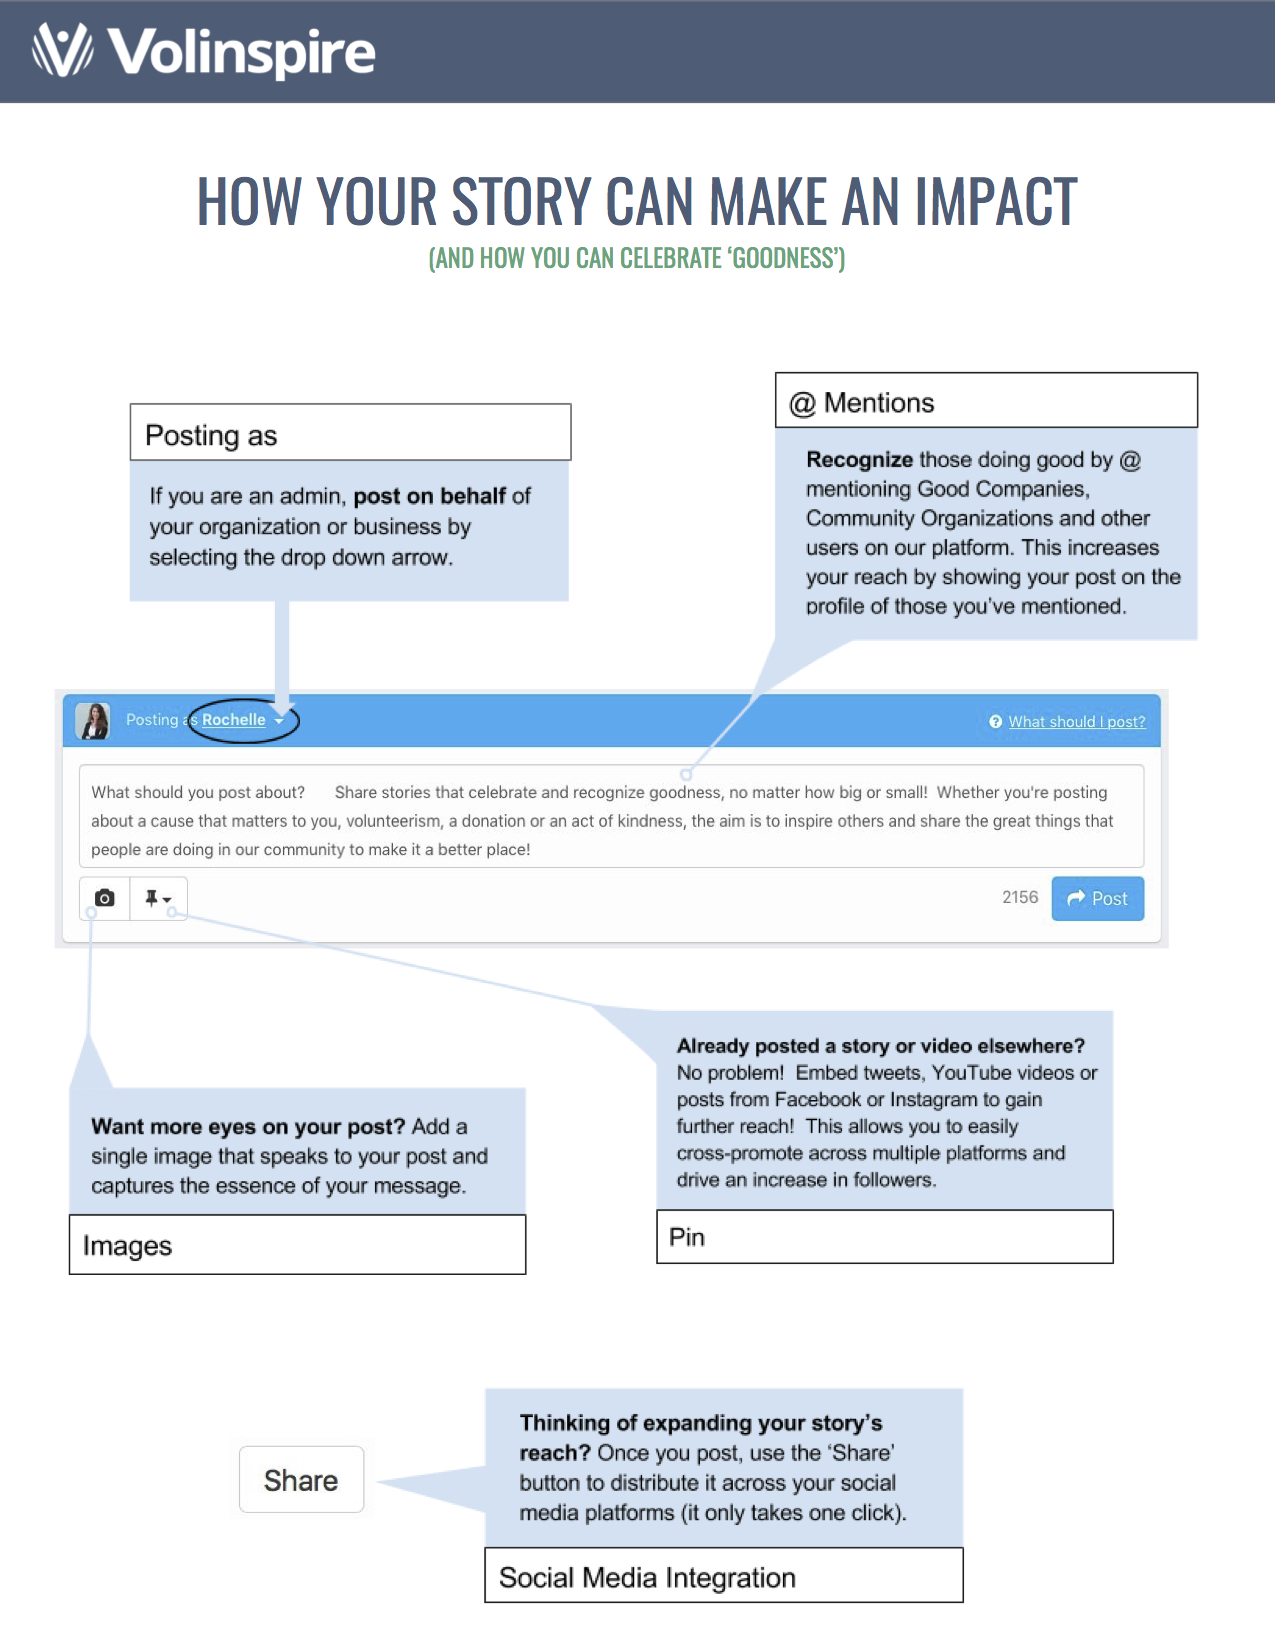 How_Your_Story_can_Make_an_Impact.jpg